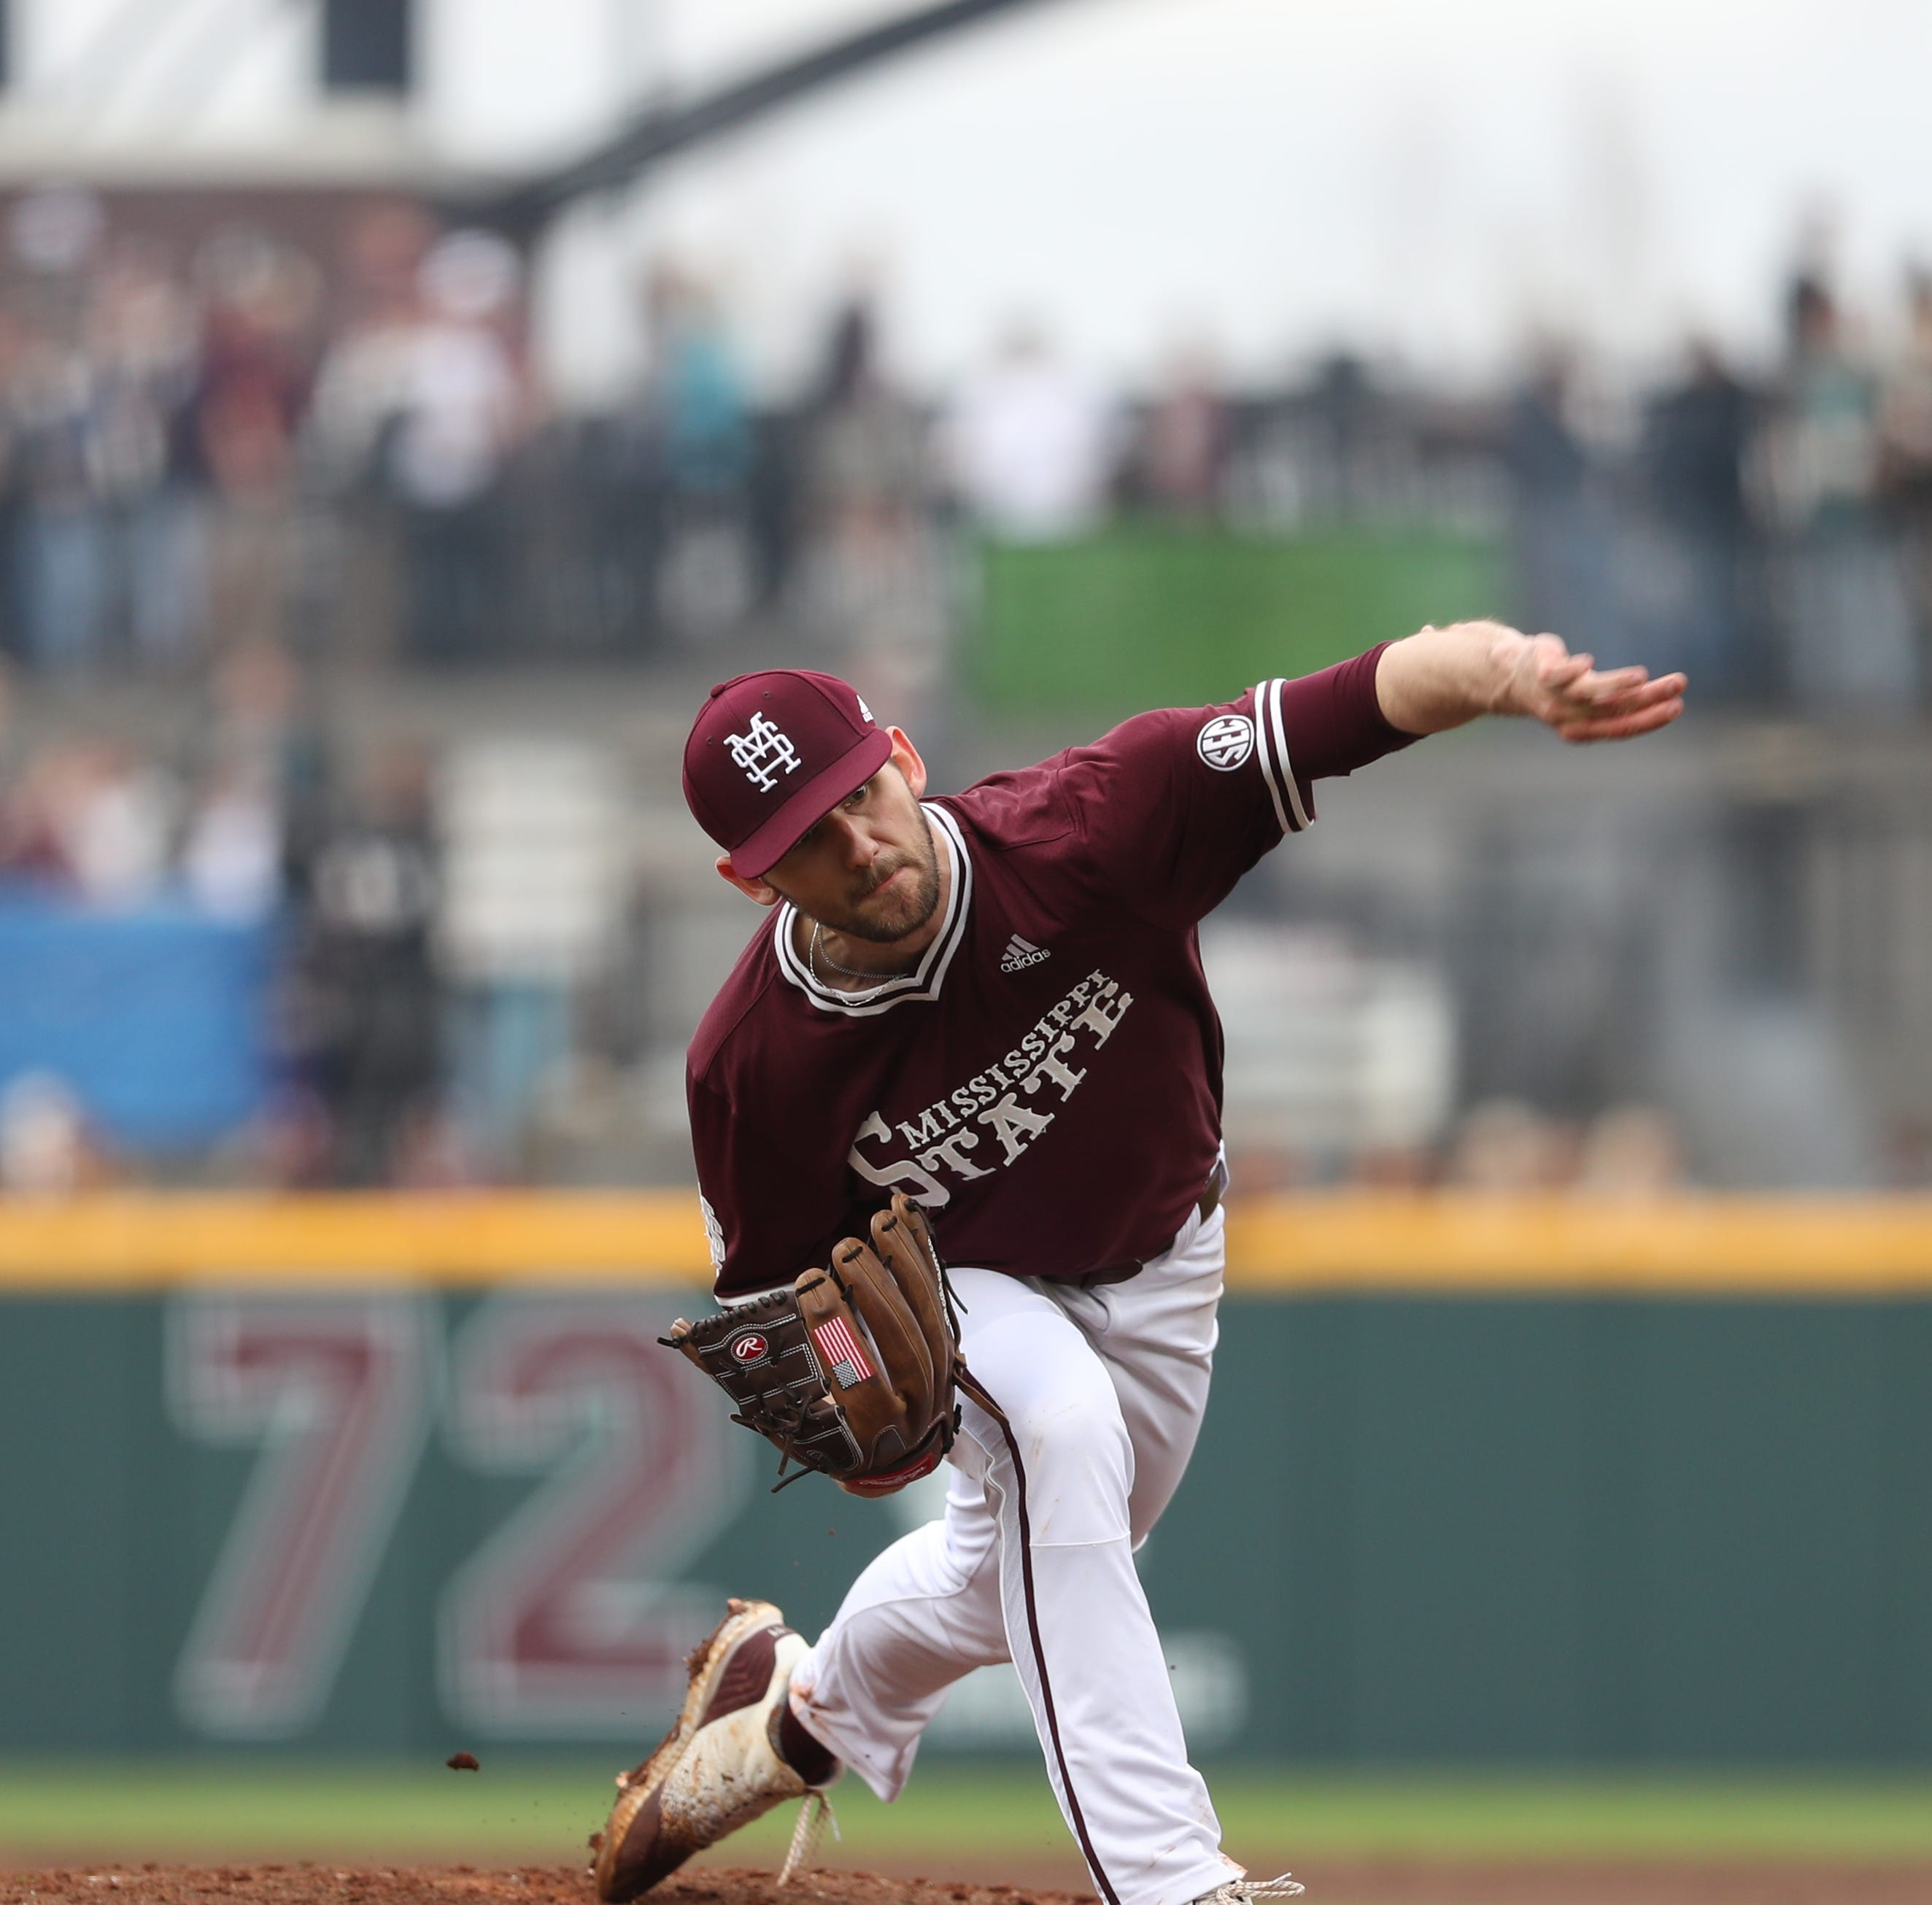 Dominant pitching leads No. 5 Mississippi State to 2-0 victory over No. 11 Ole Miss